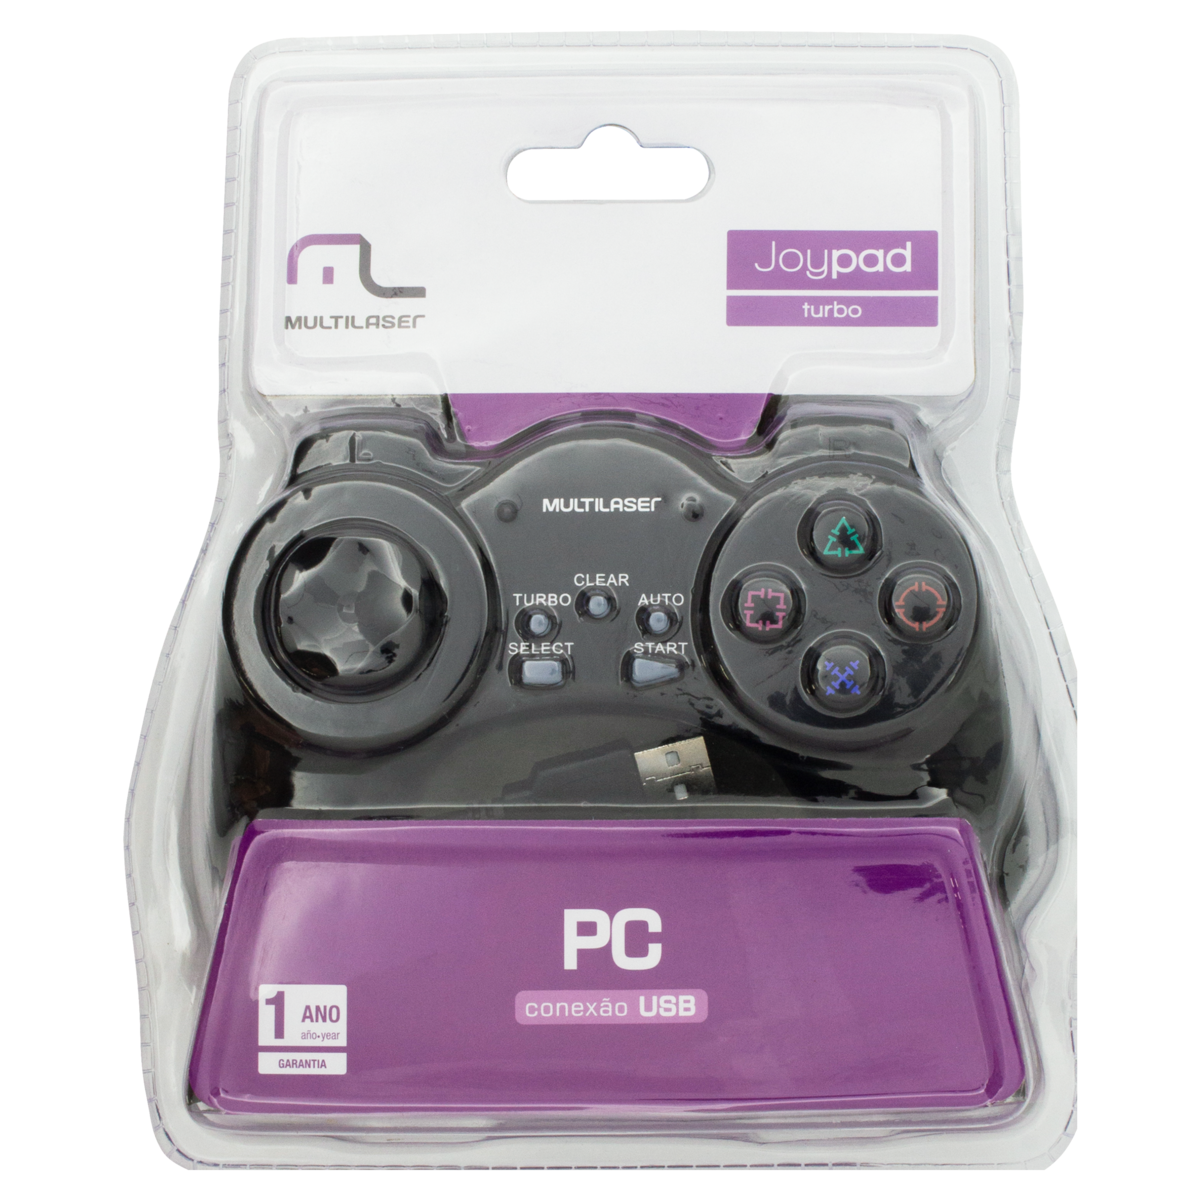 7898458702408 - MULTILASER JS028 GAMEPAD